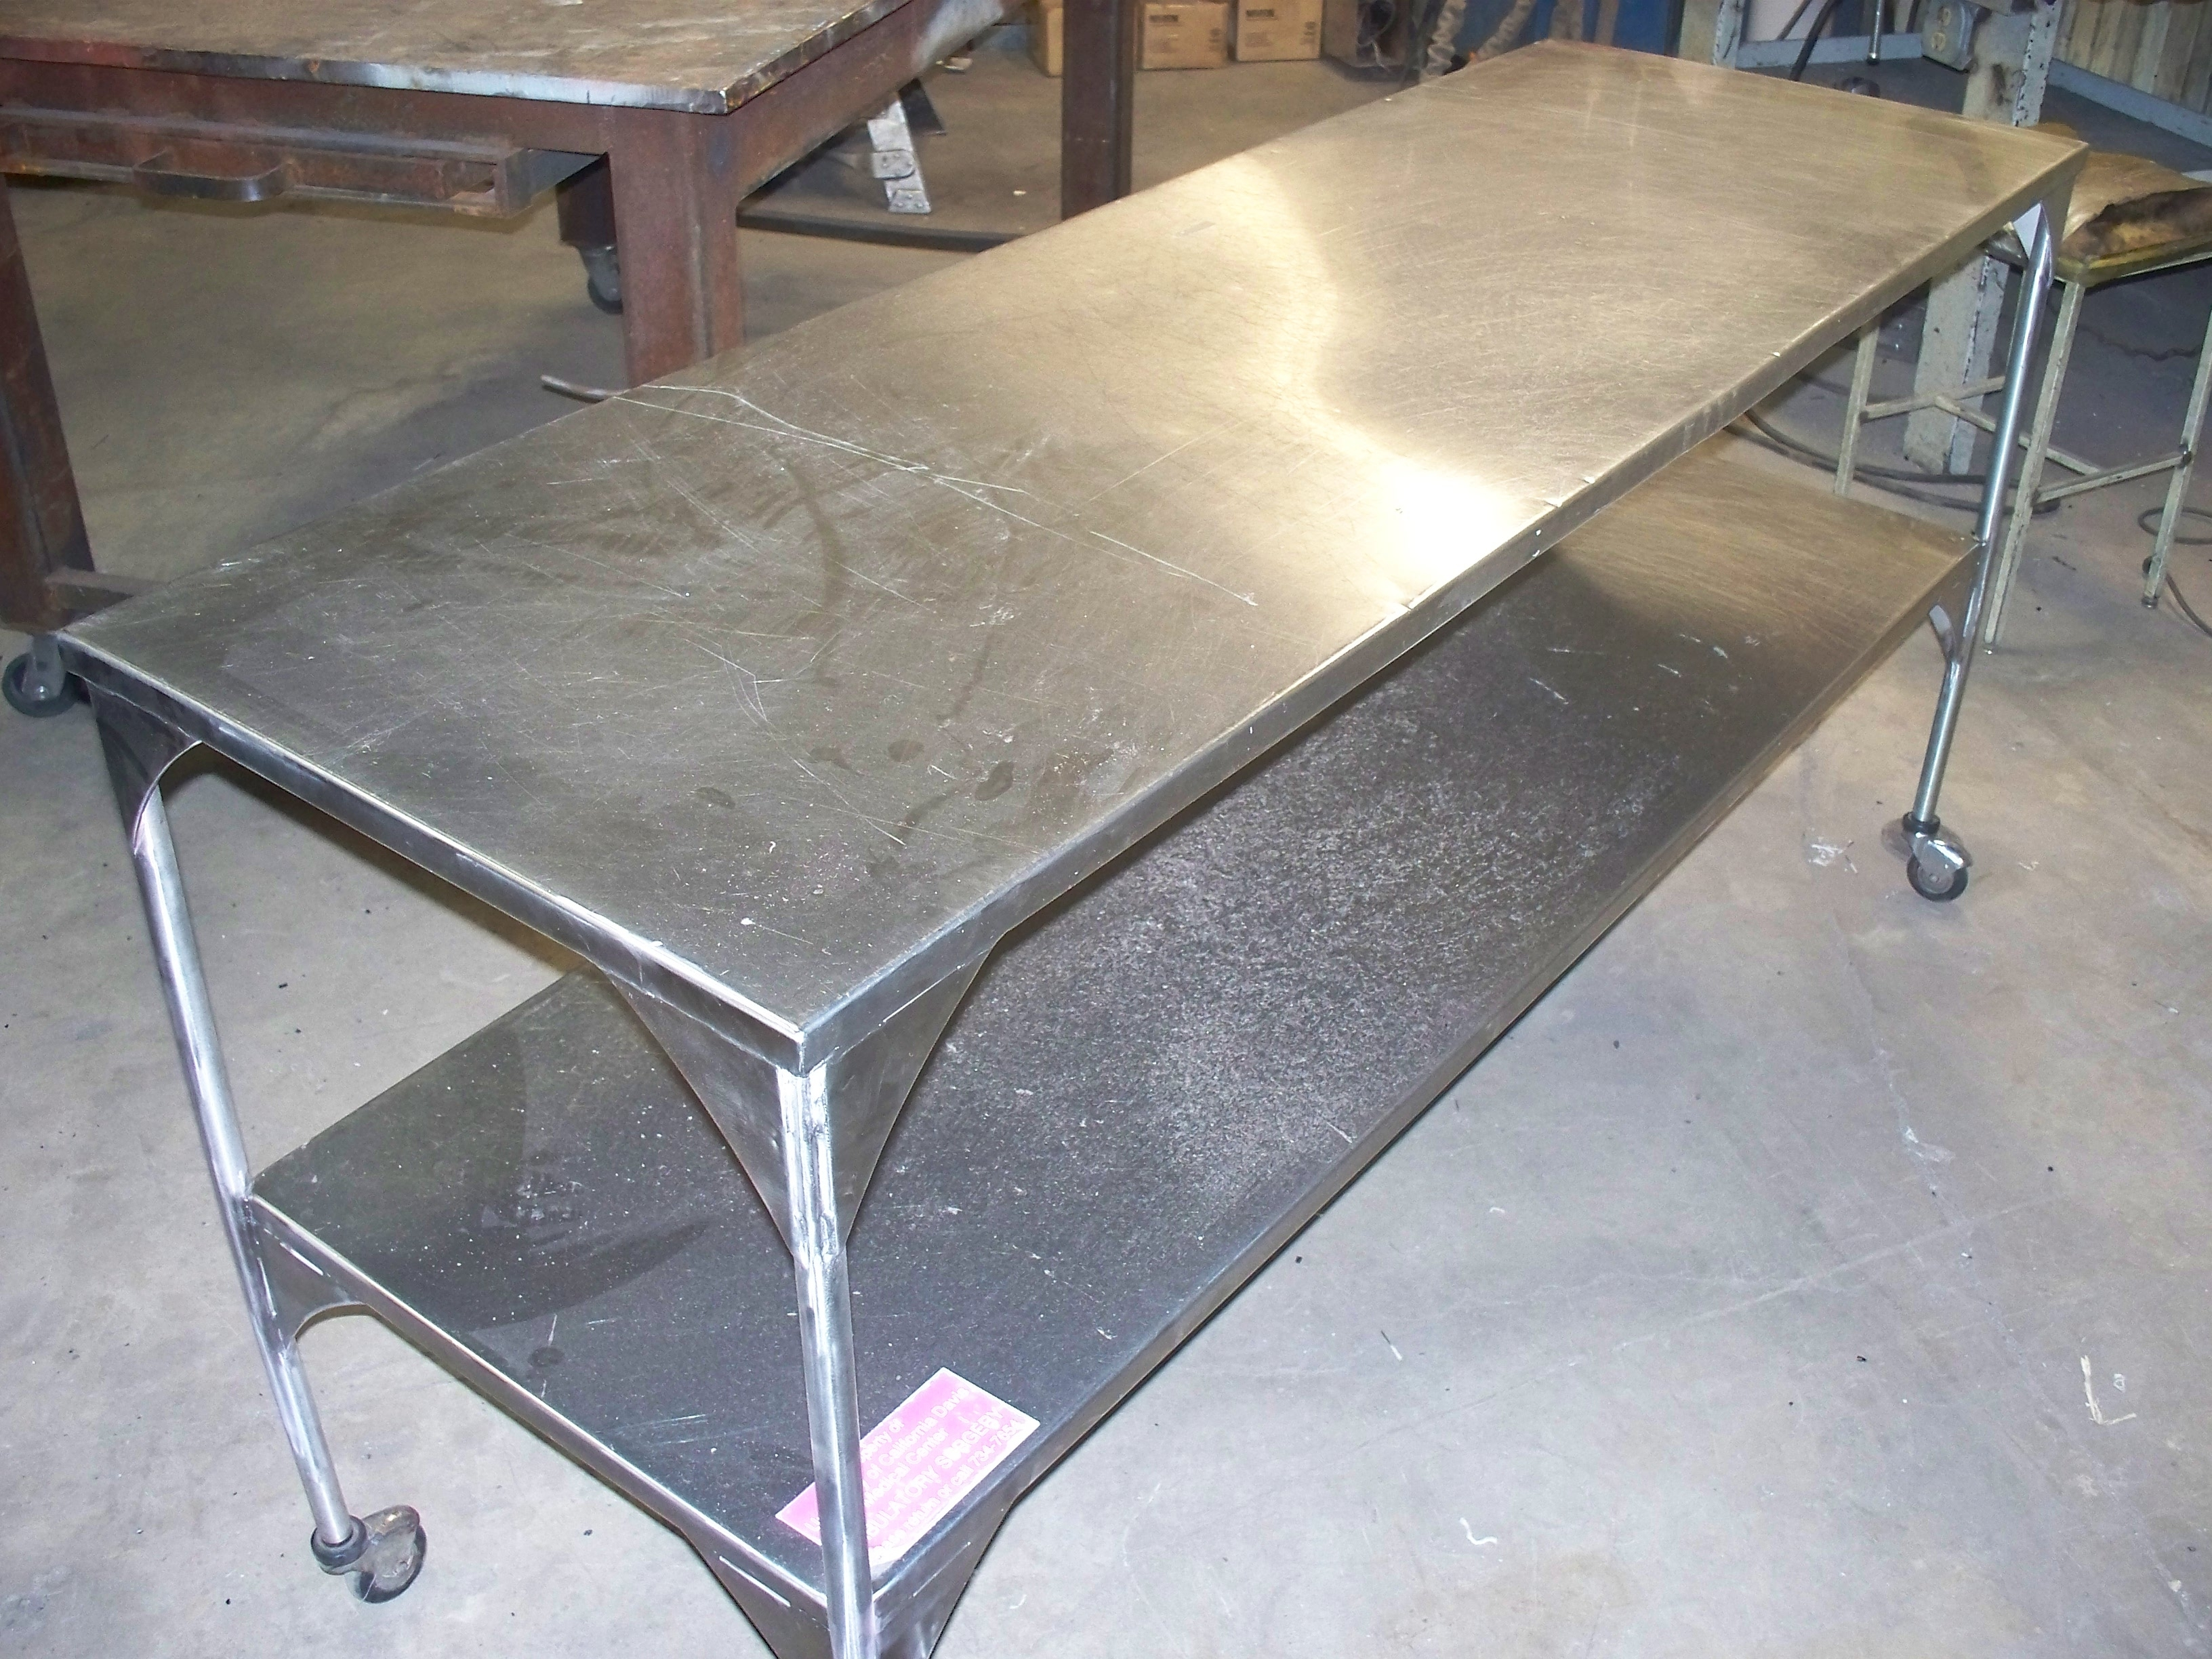 Repair Stainless Steel EAGLE WELDING SERVICE - Stain steel table